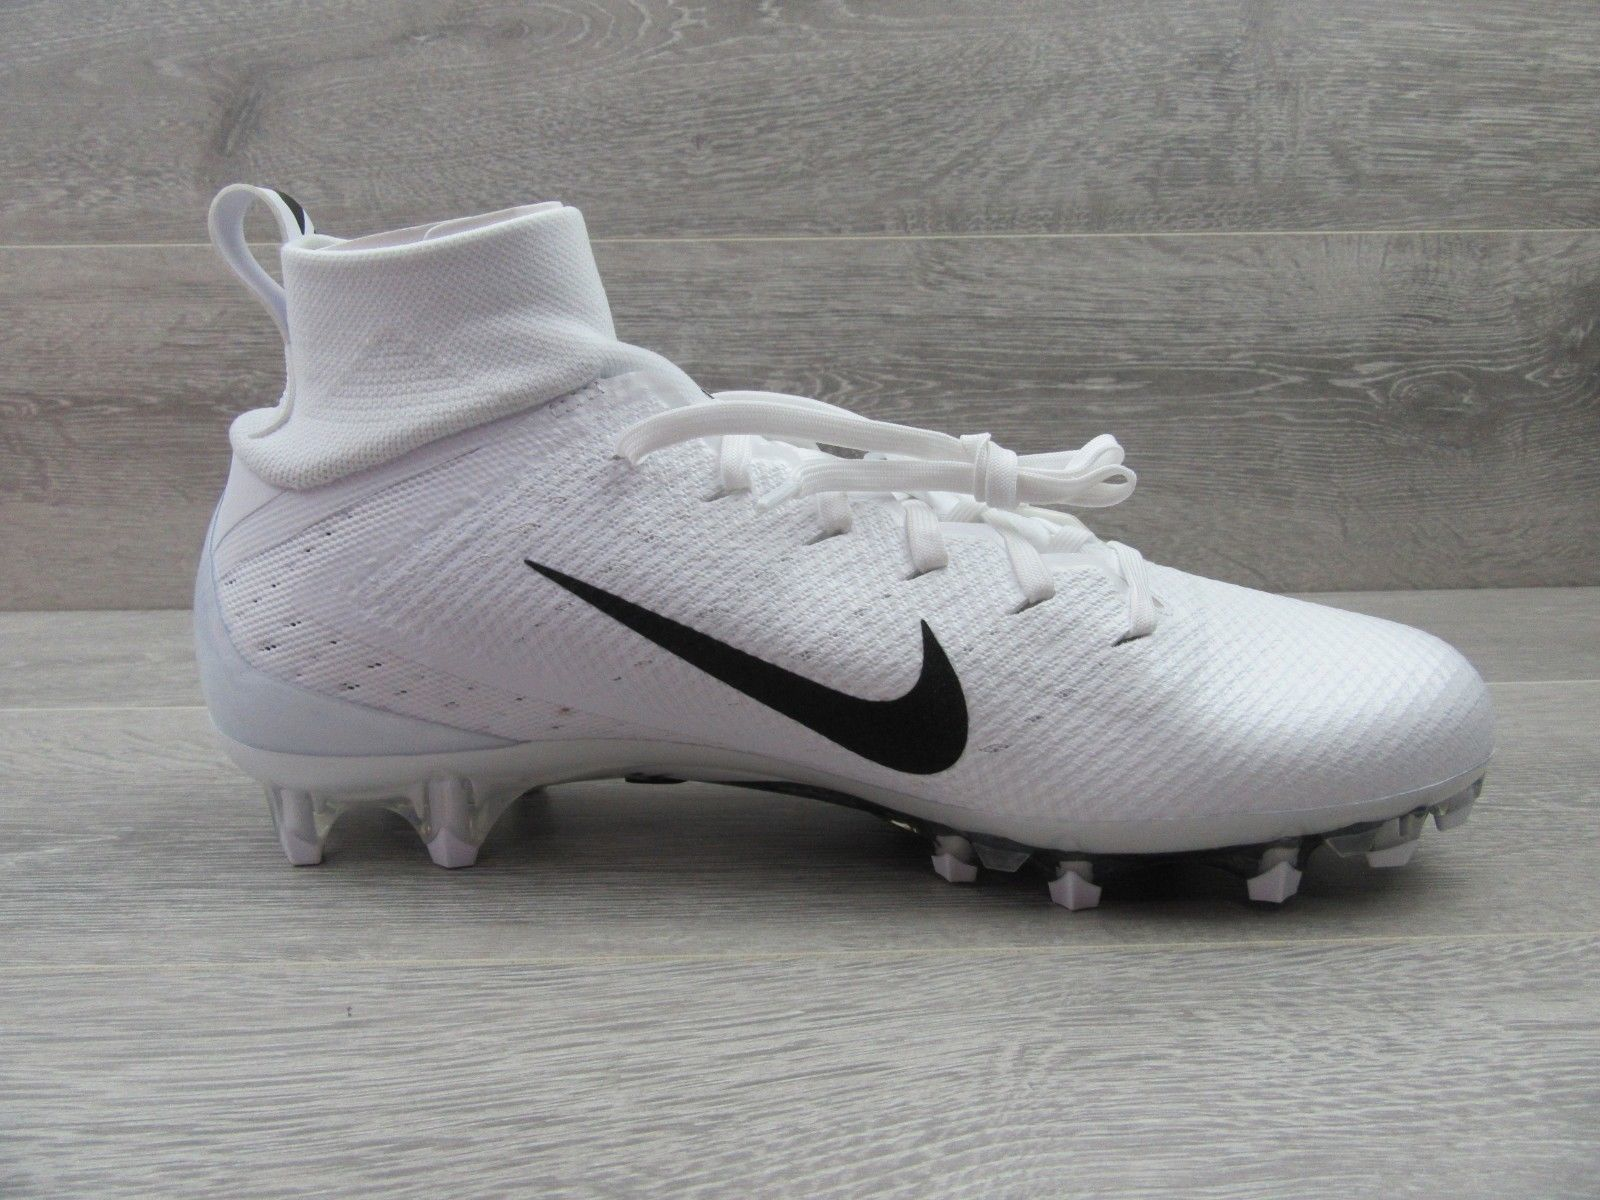 02969eb8cd34 Nike Vapor Untouchable Pro 3 Football Cleats Size 11 White Black 917165 105  New